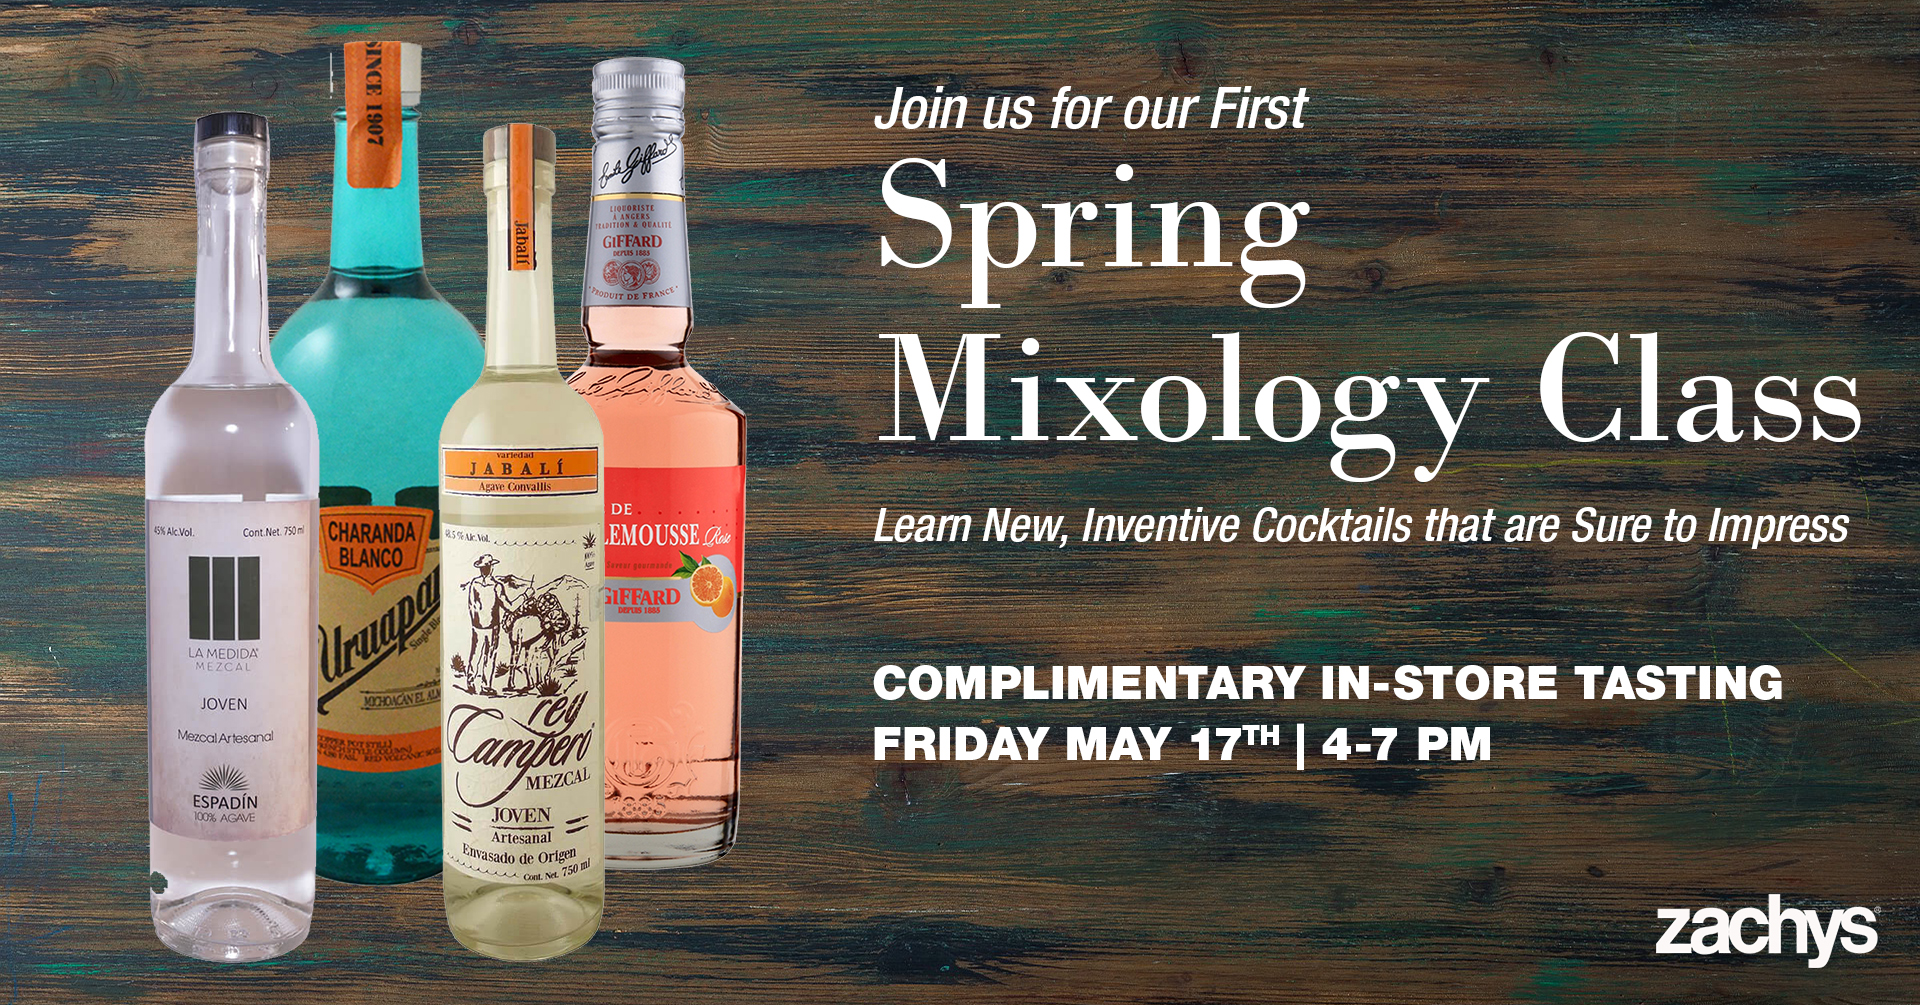 spring mixology class tasting event banner, on blue and brown stained wood